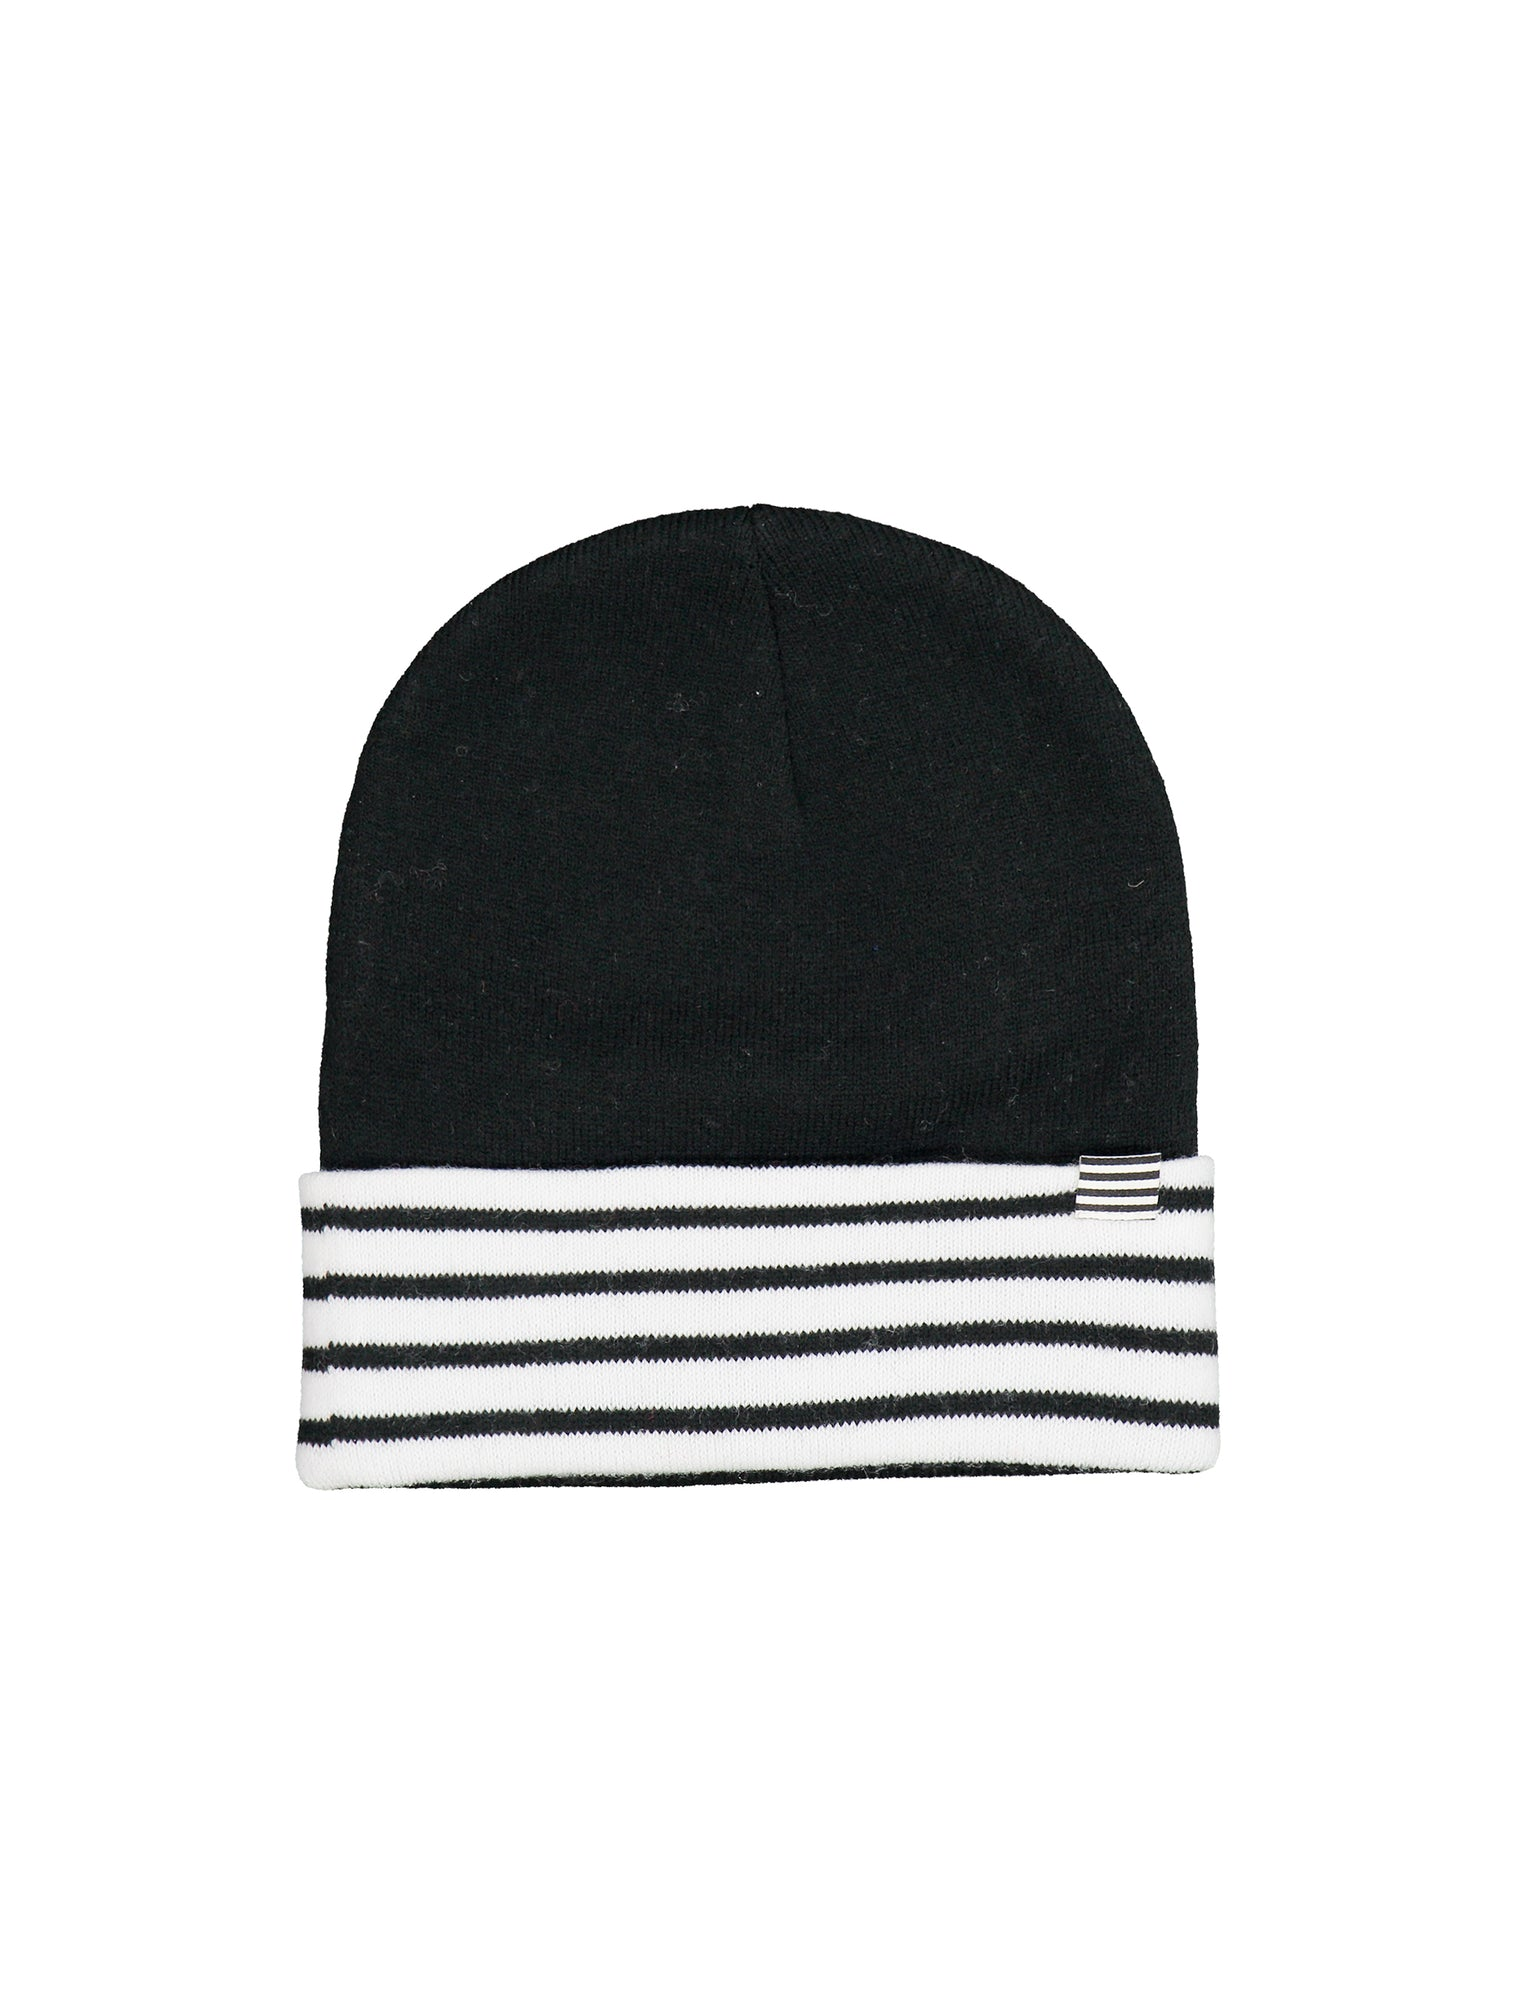 Isak Ambas, Black/Striped